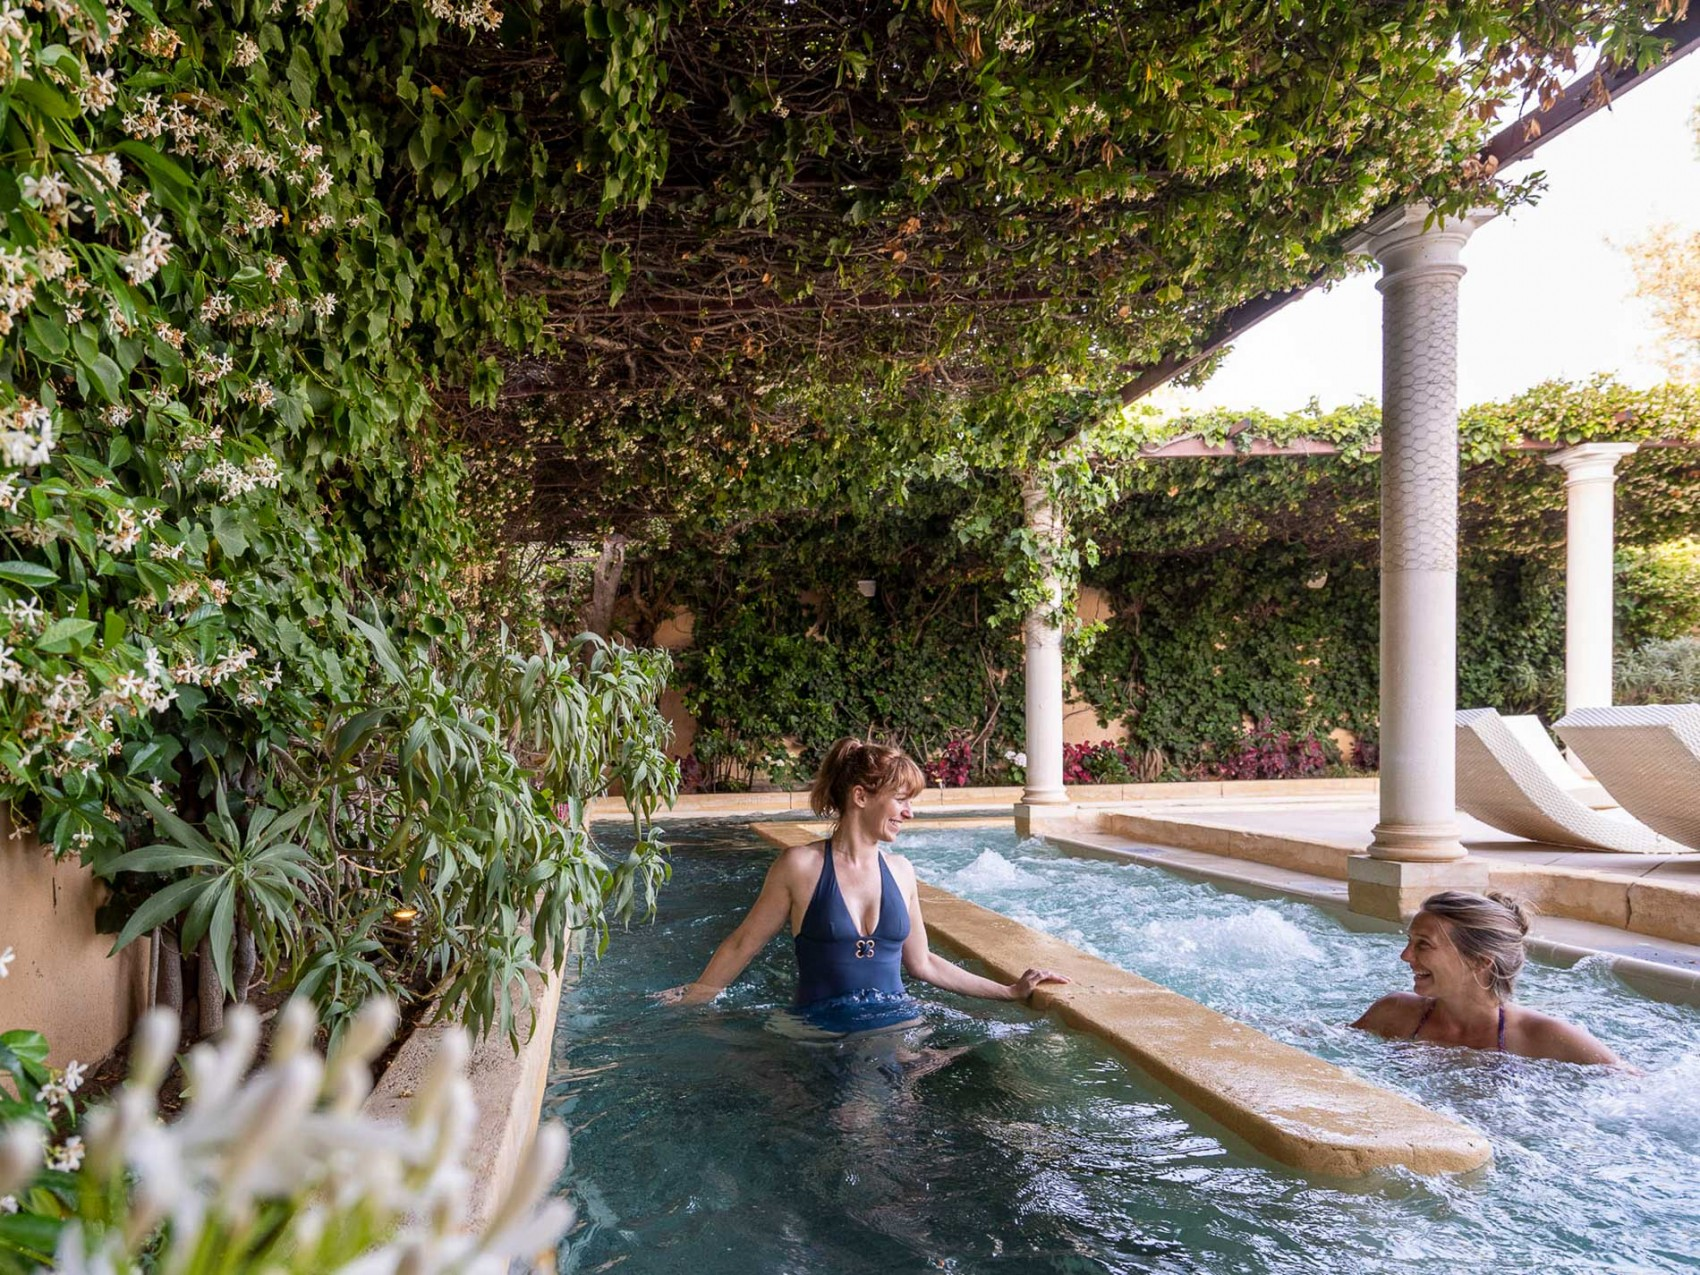 Camping Languedoc Roussillon Beauty And Wellness During Your Stay